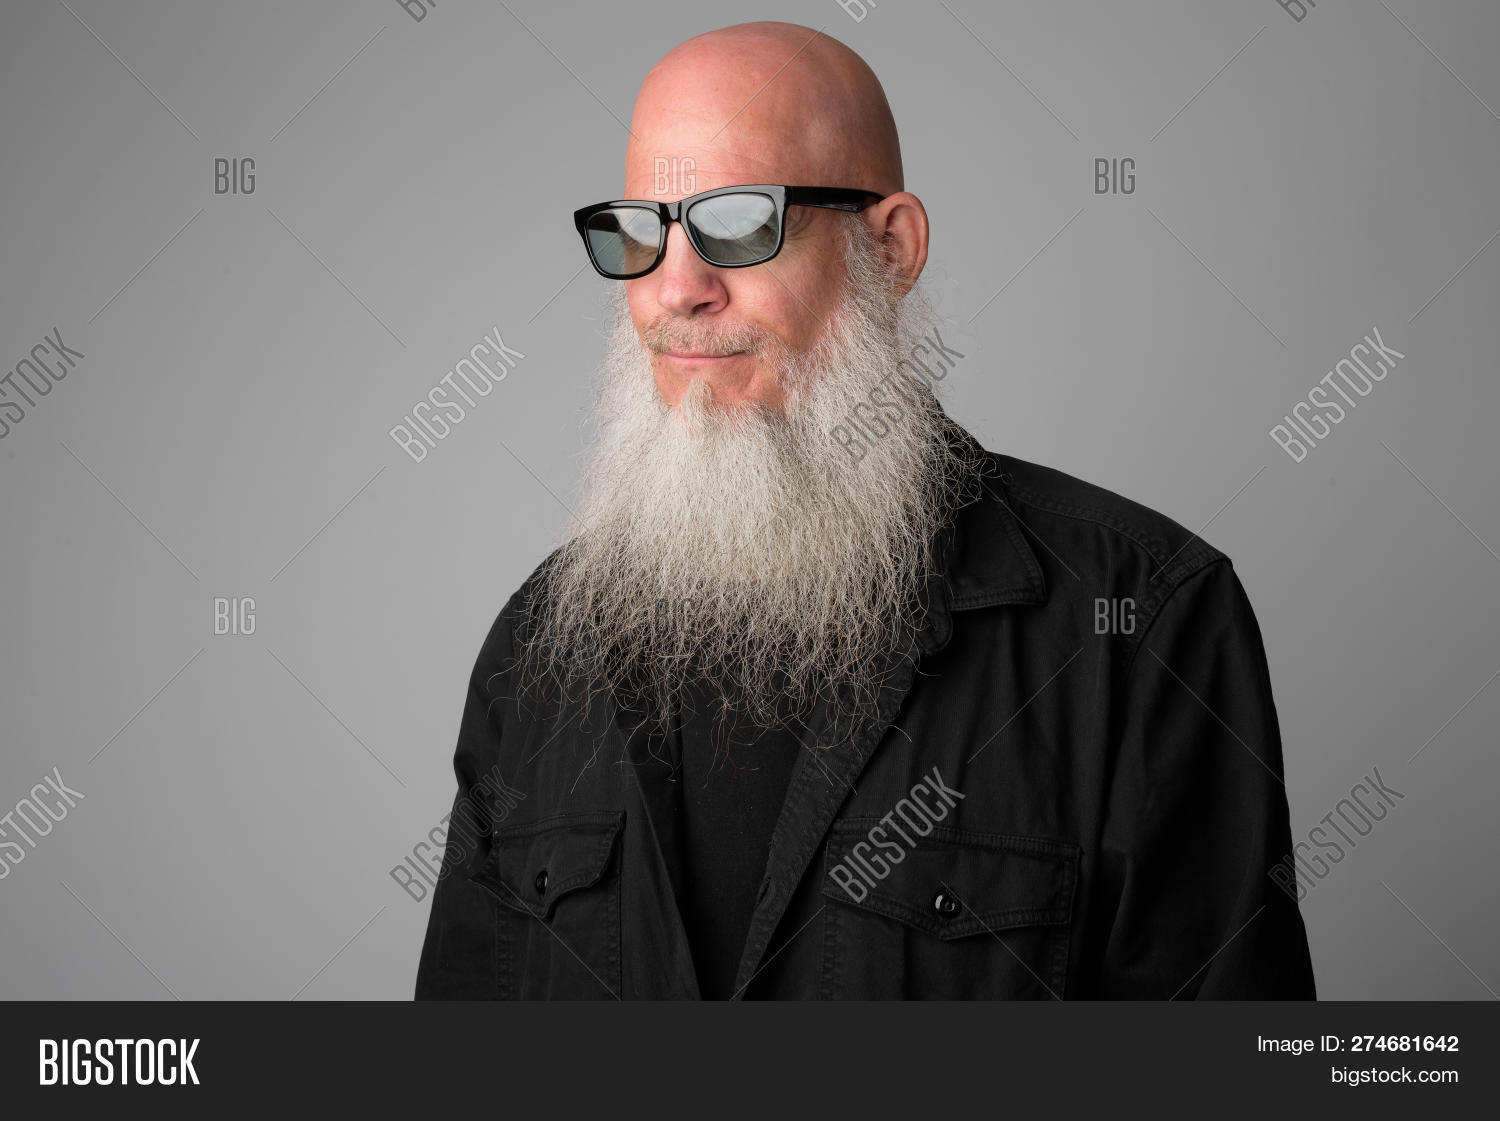 Face Of Mature Bald Bearded Man With Sunglasses Thinking And Looking Away